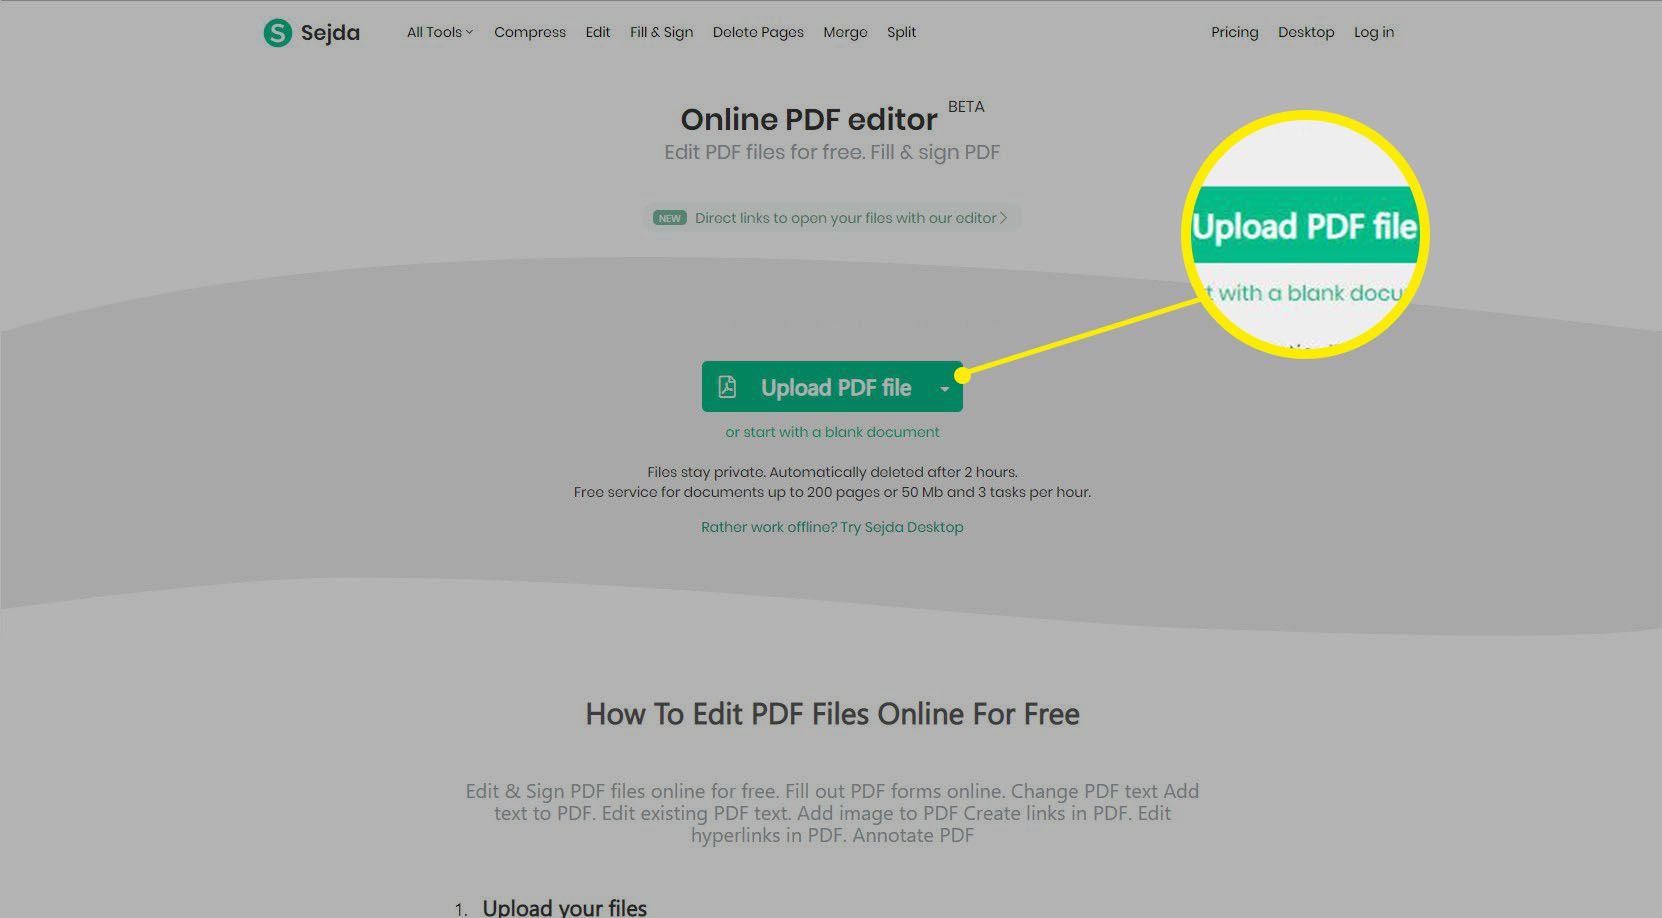 Home page for Sejda online PDF editor